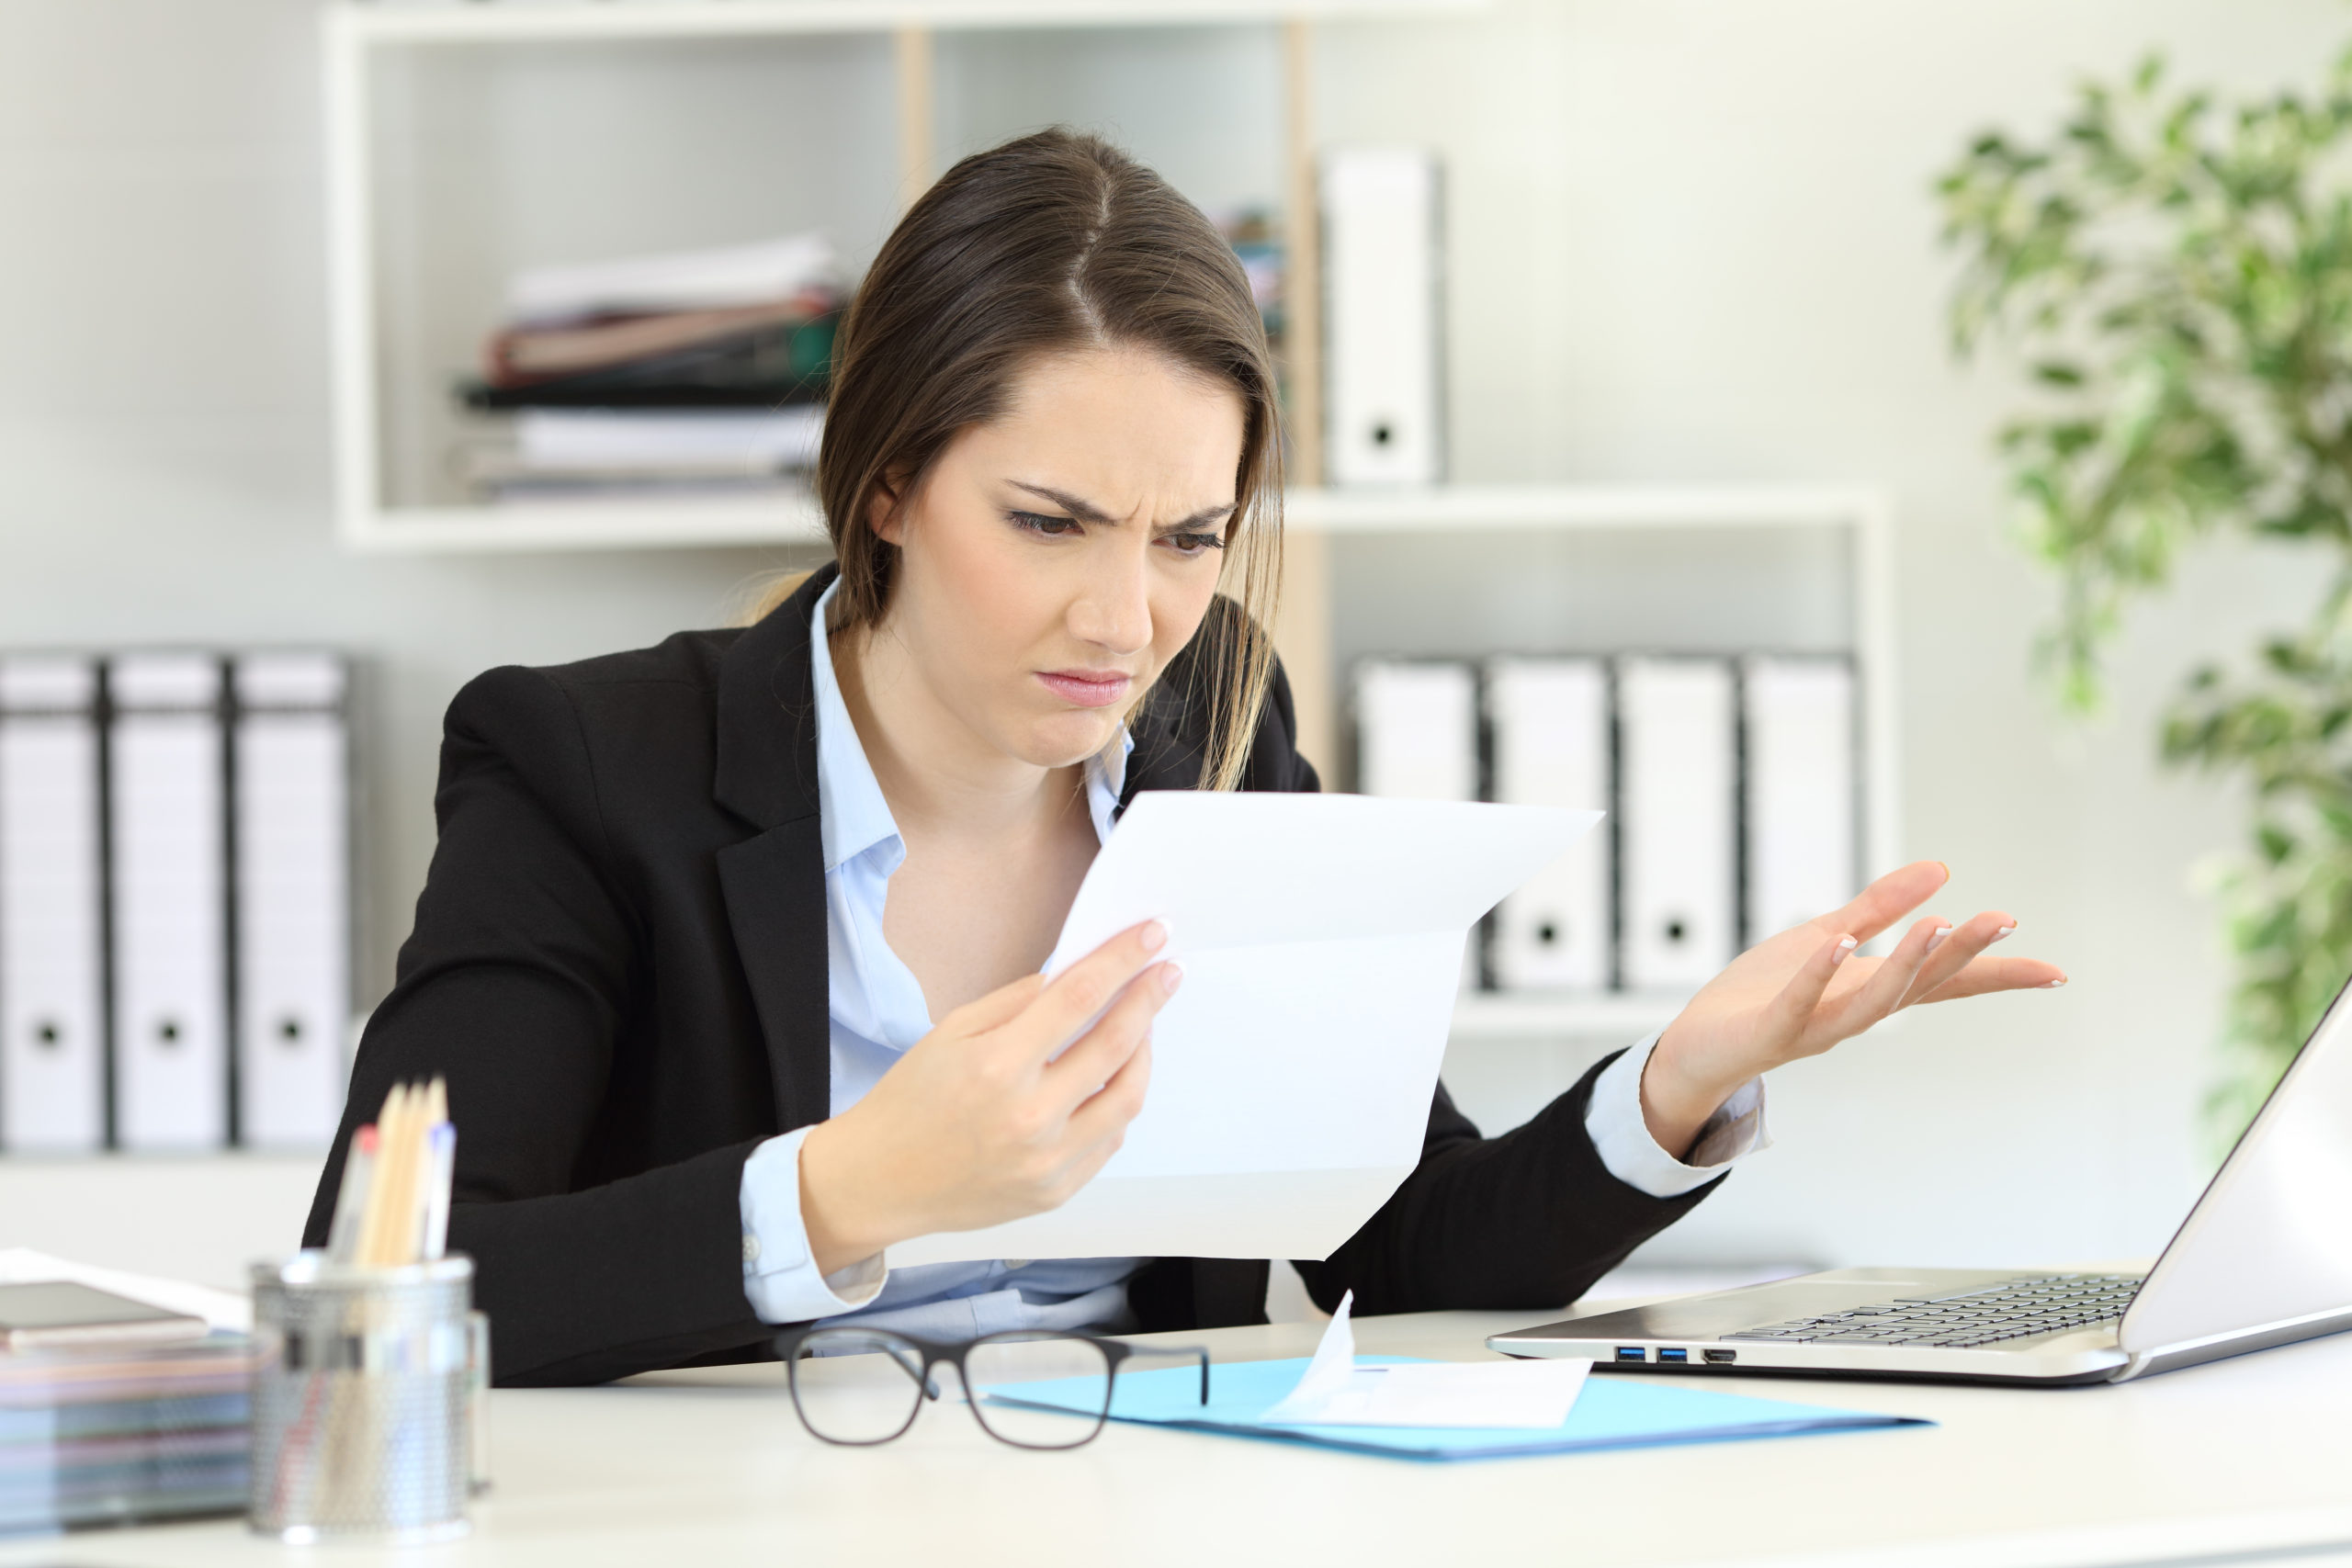 Business woman with document looking confused wondering if her insurer will pay out her claim